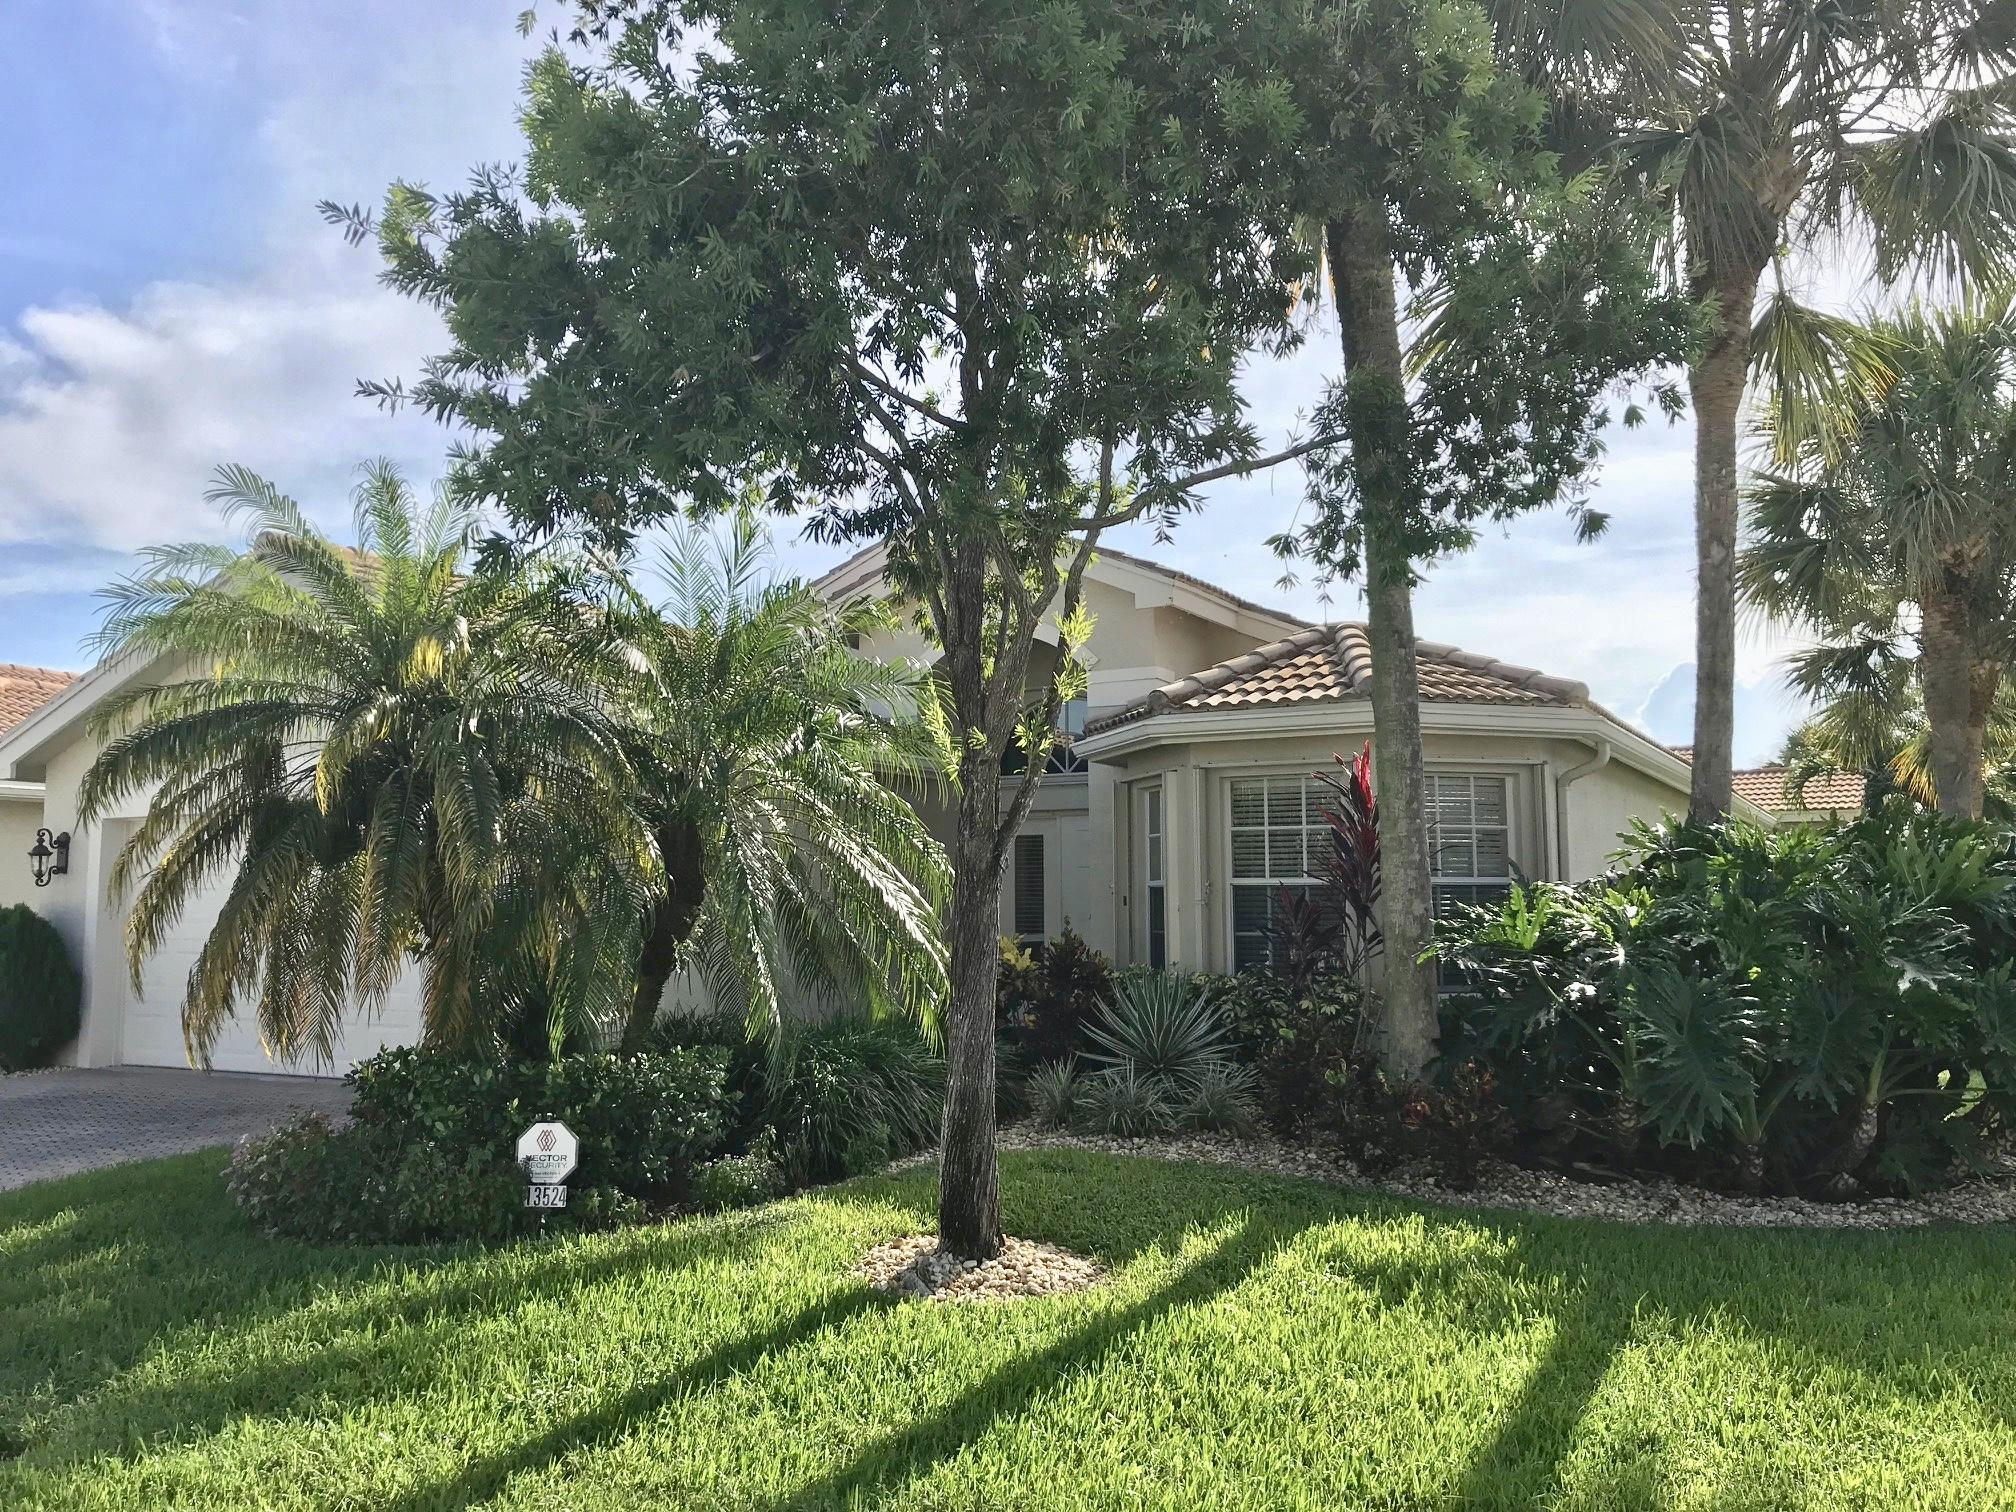 Home for sale in Valencia Falls Delray Beach Florida